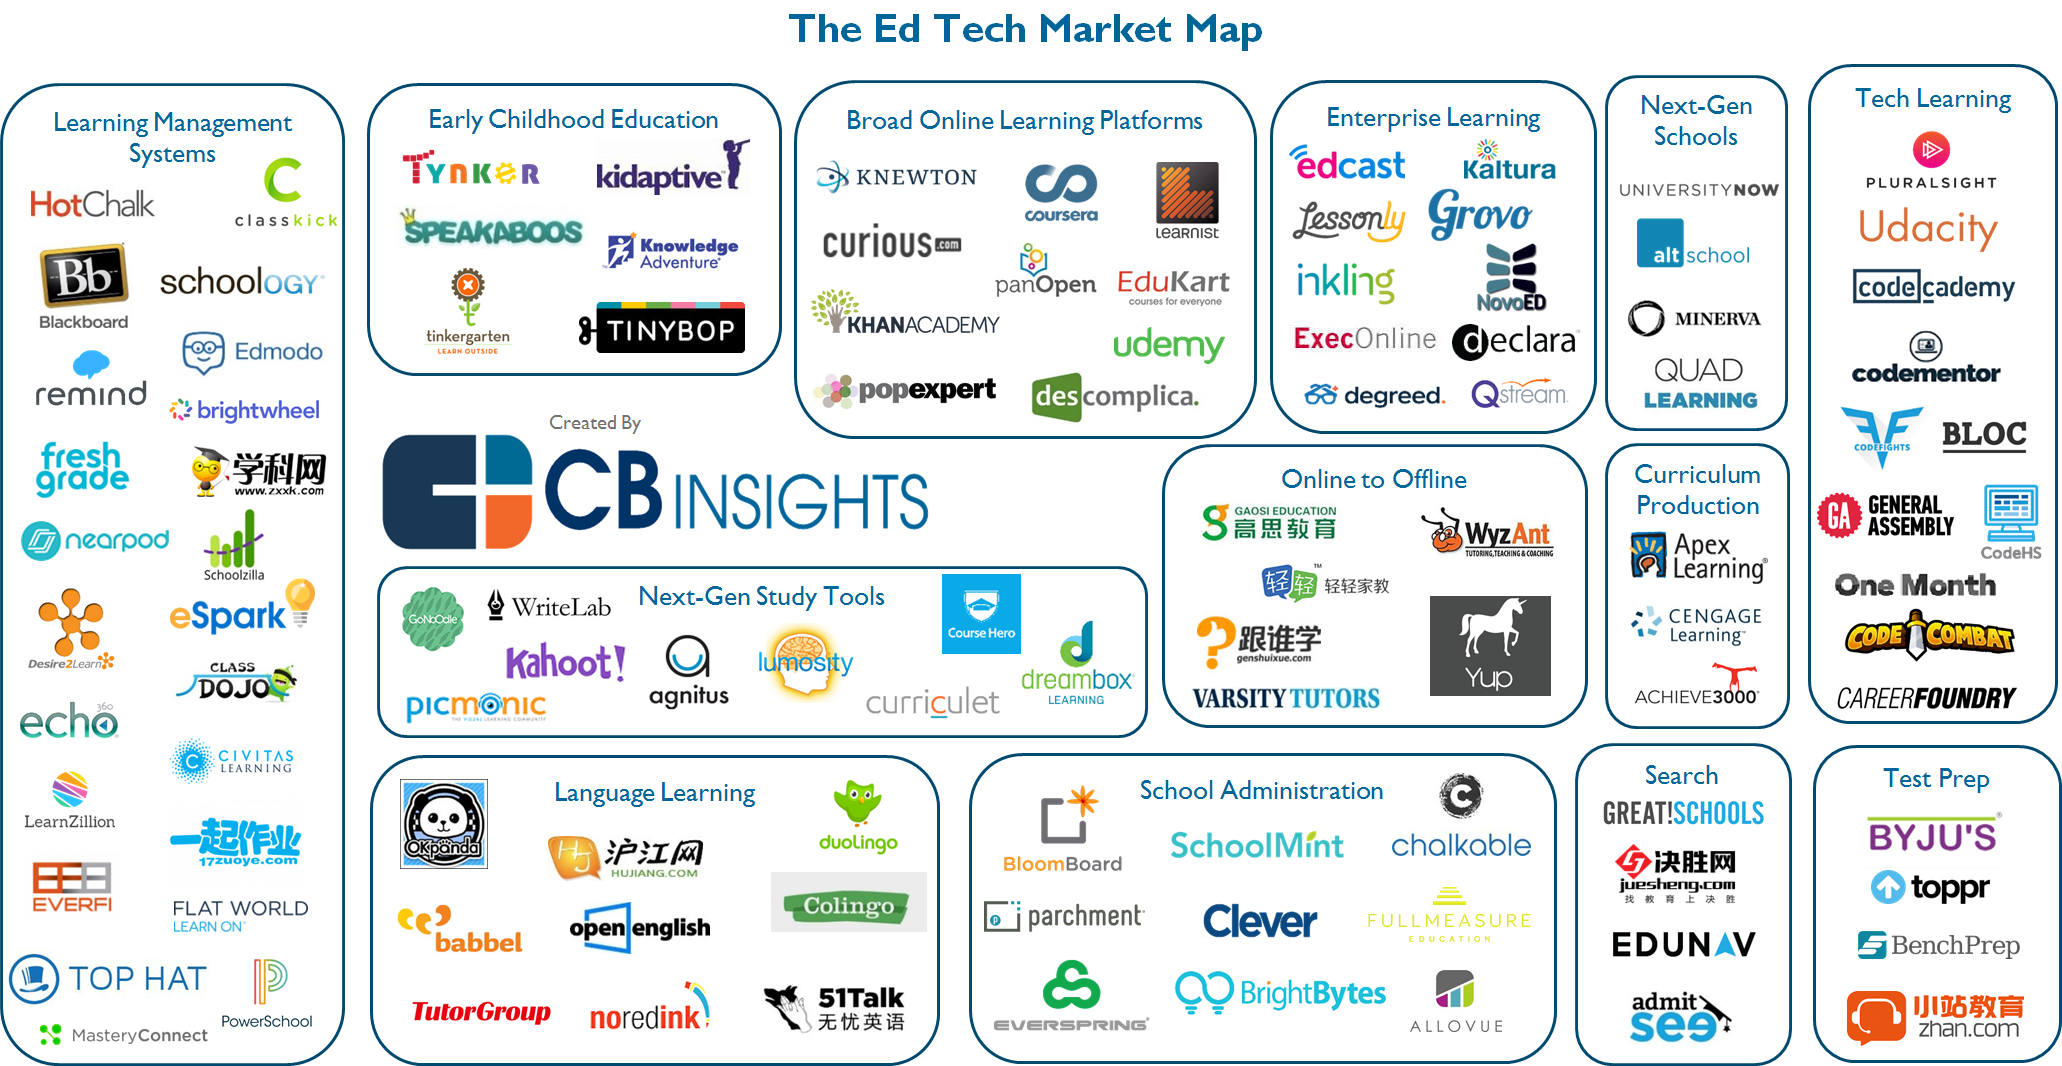 5.23 ed tech market map